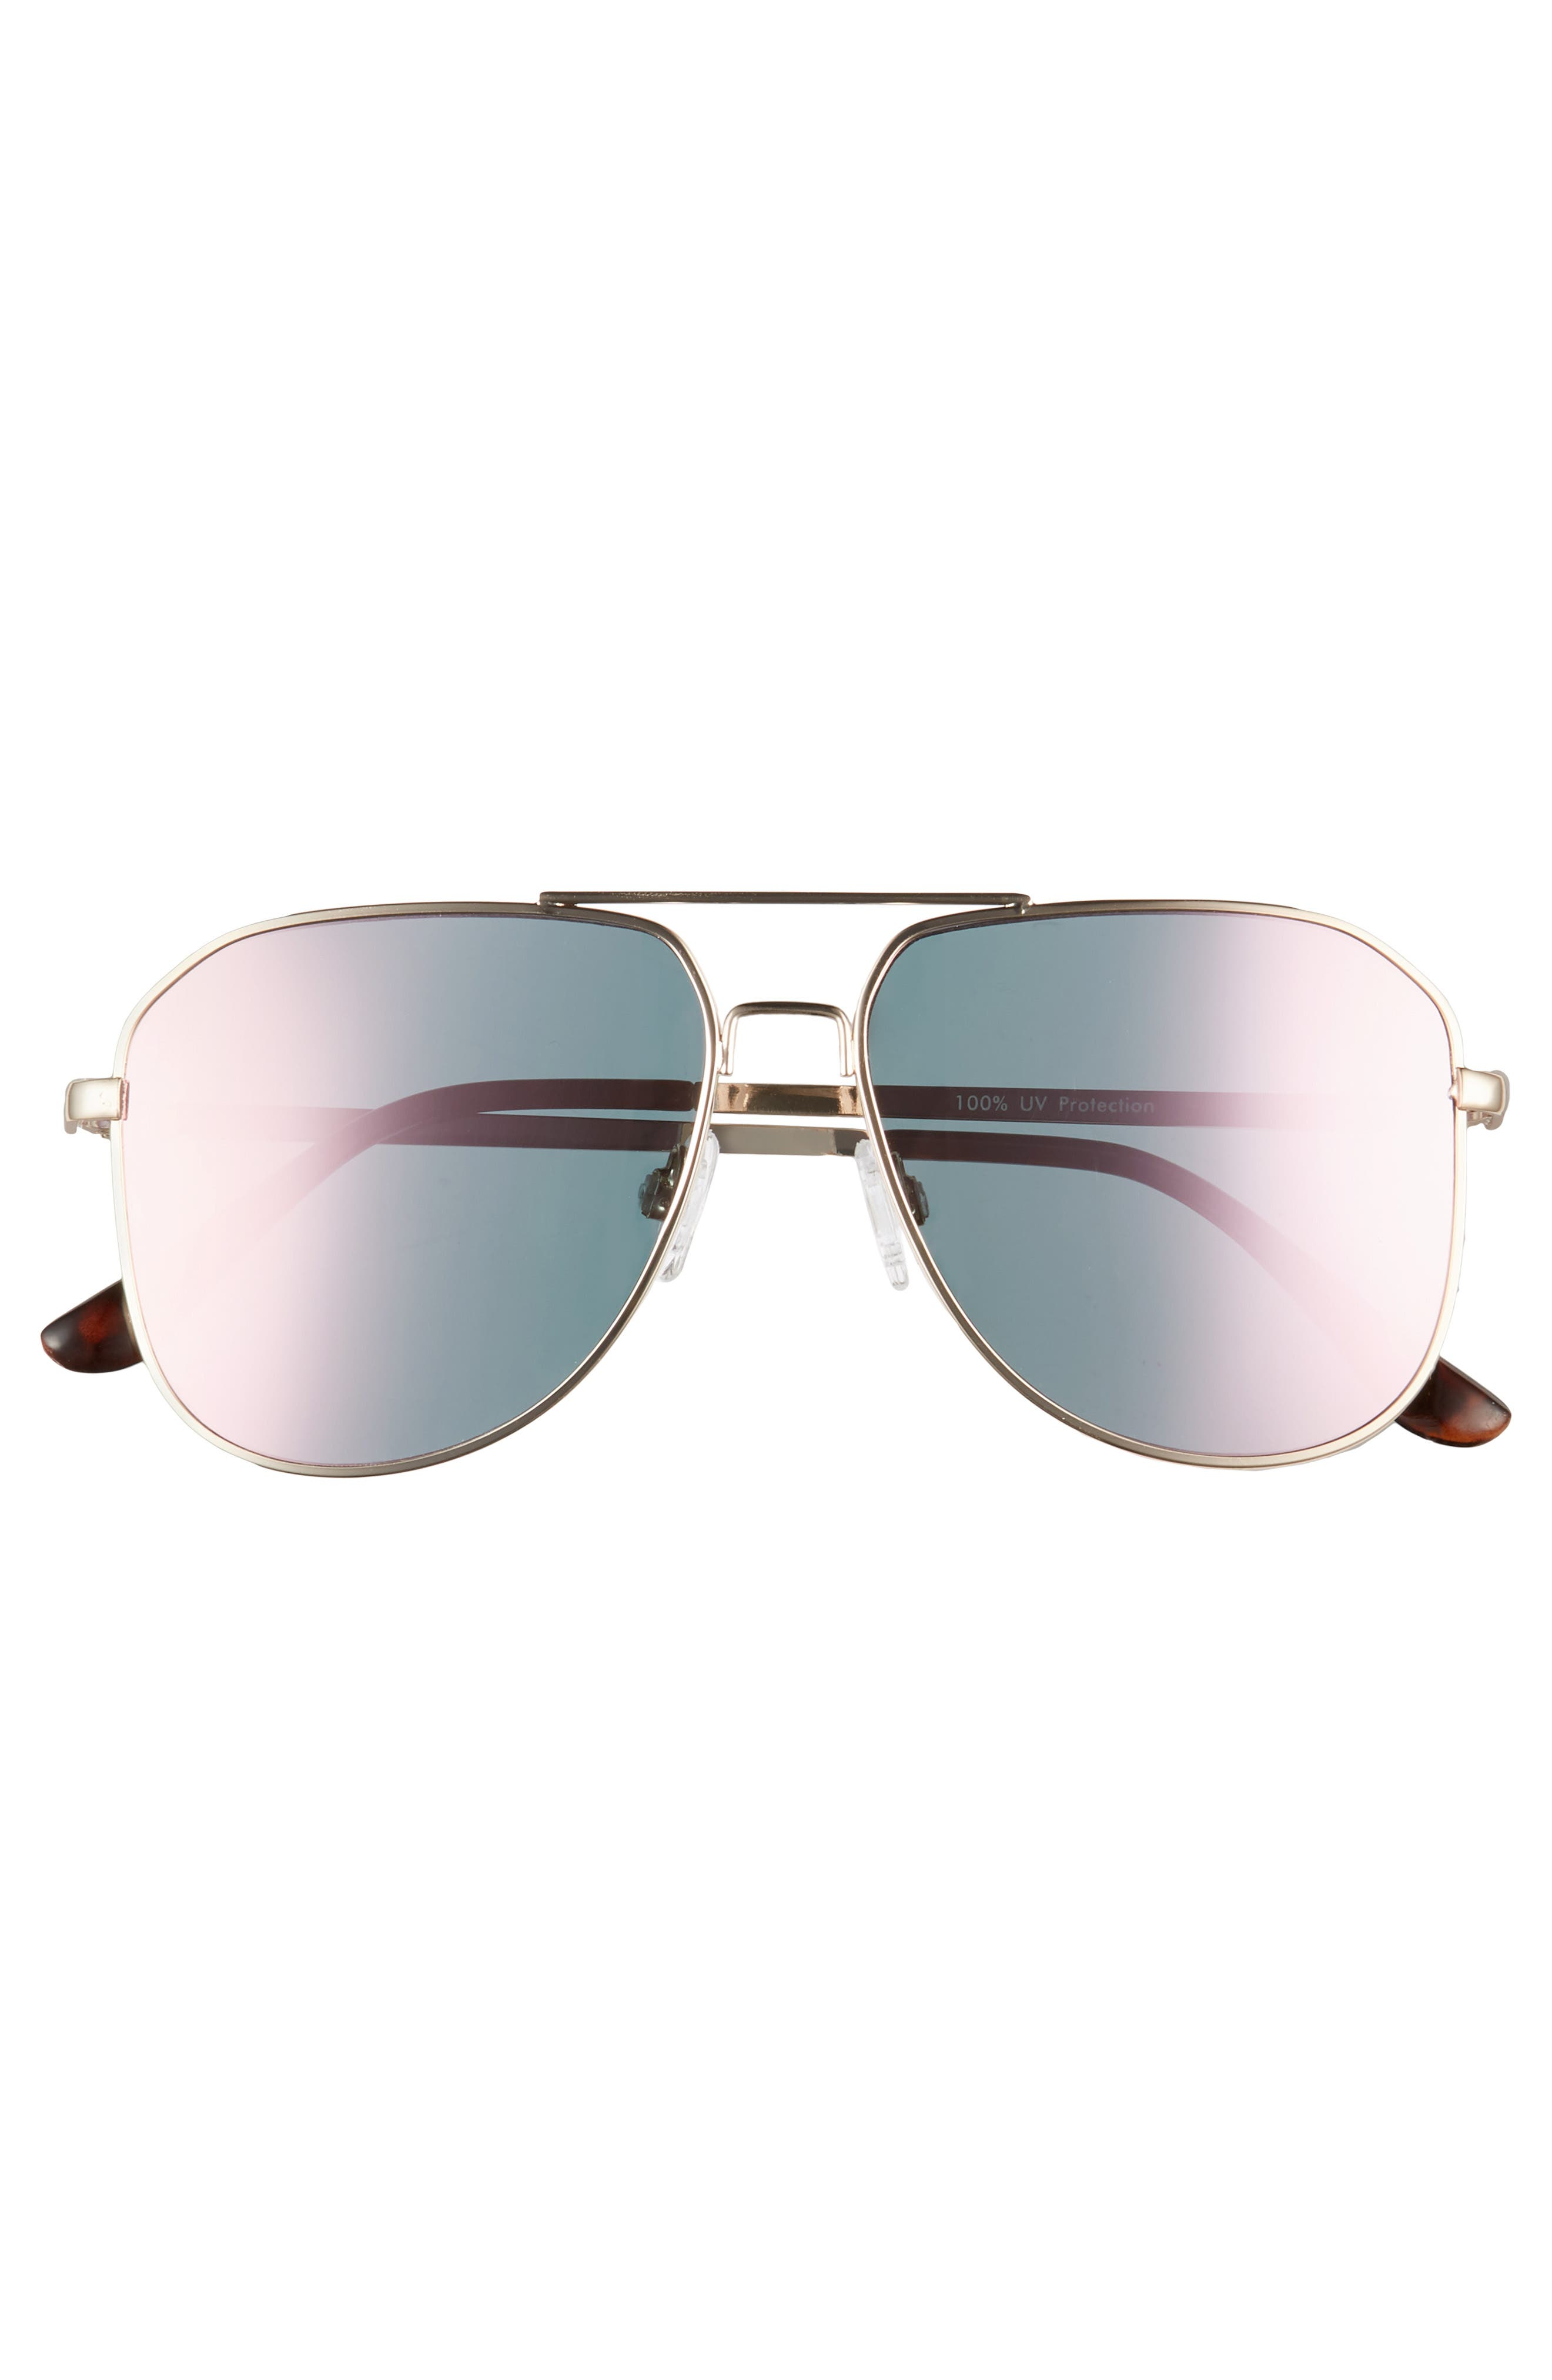 54mm Aviator Sunglasses,                             Alternate thumbnail 3, color,                             Gold/ Pink